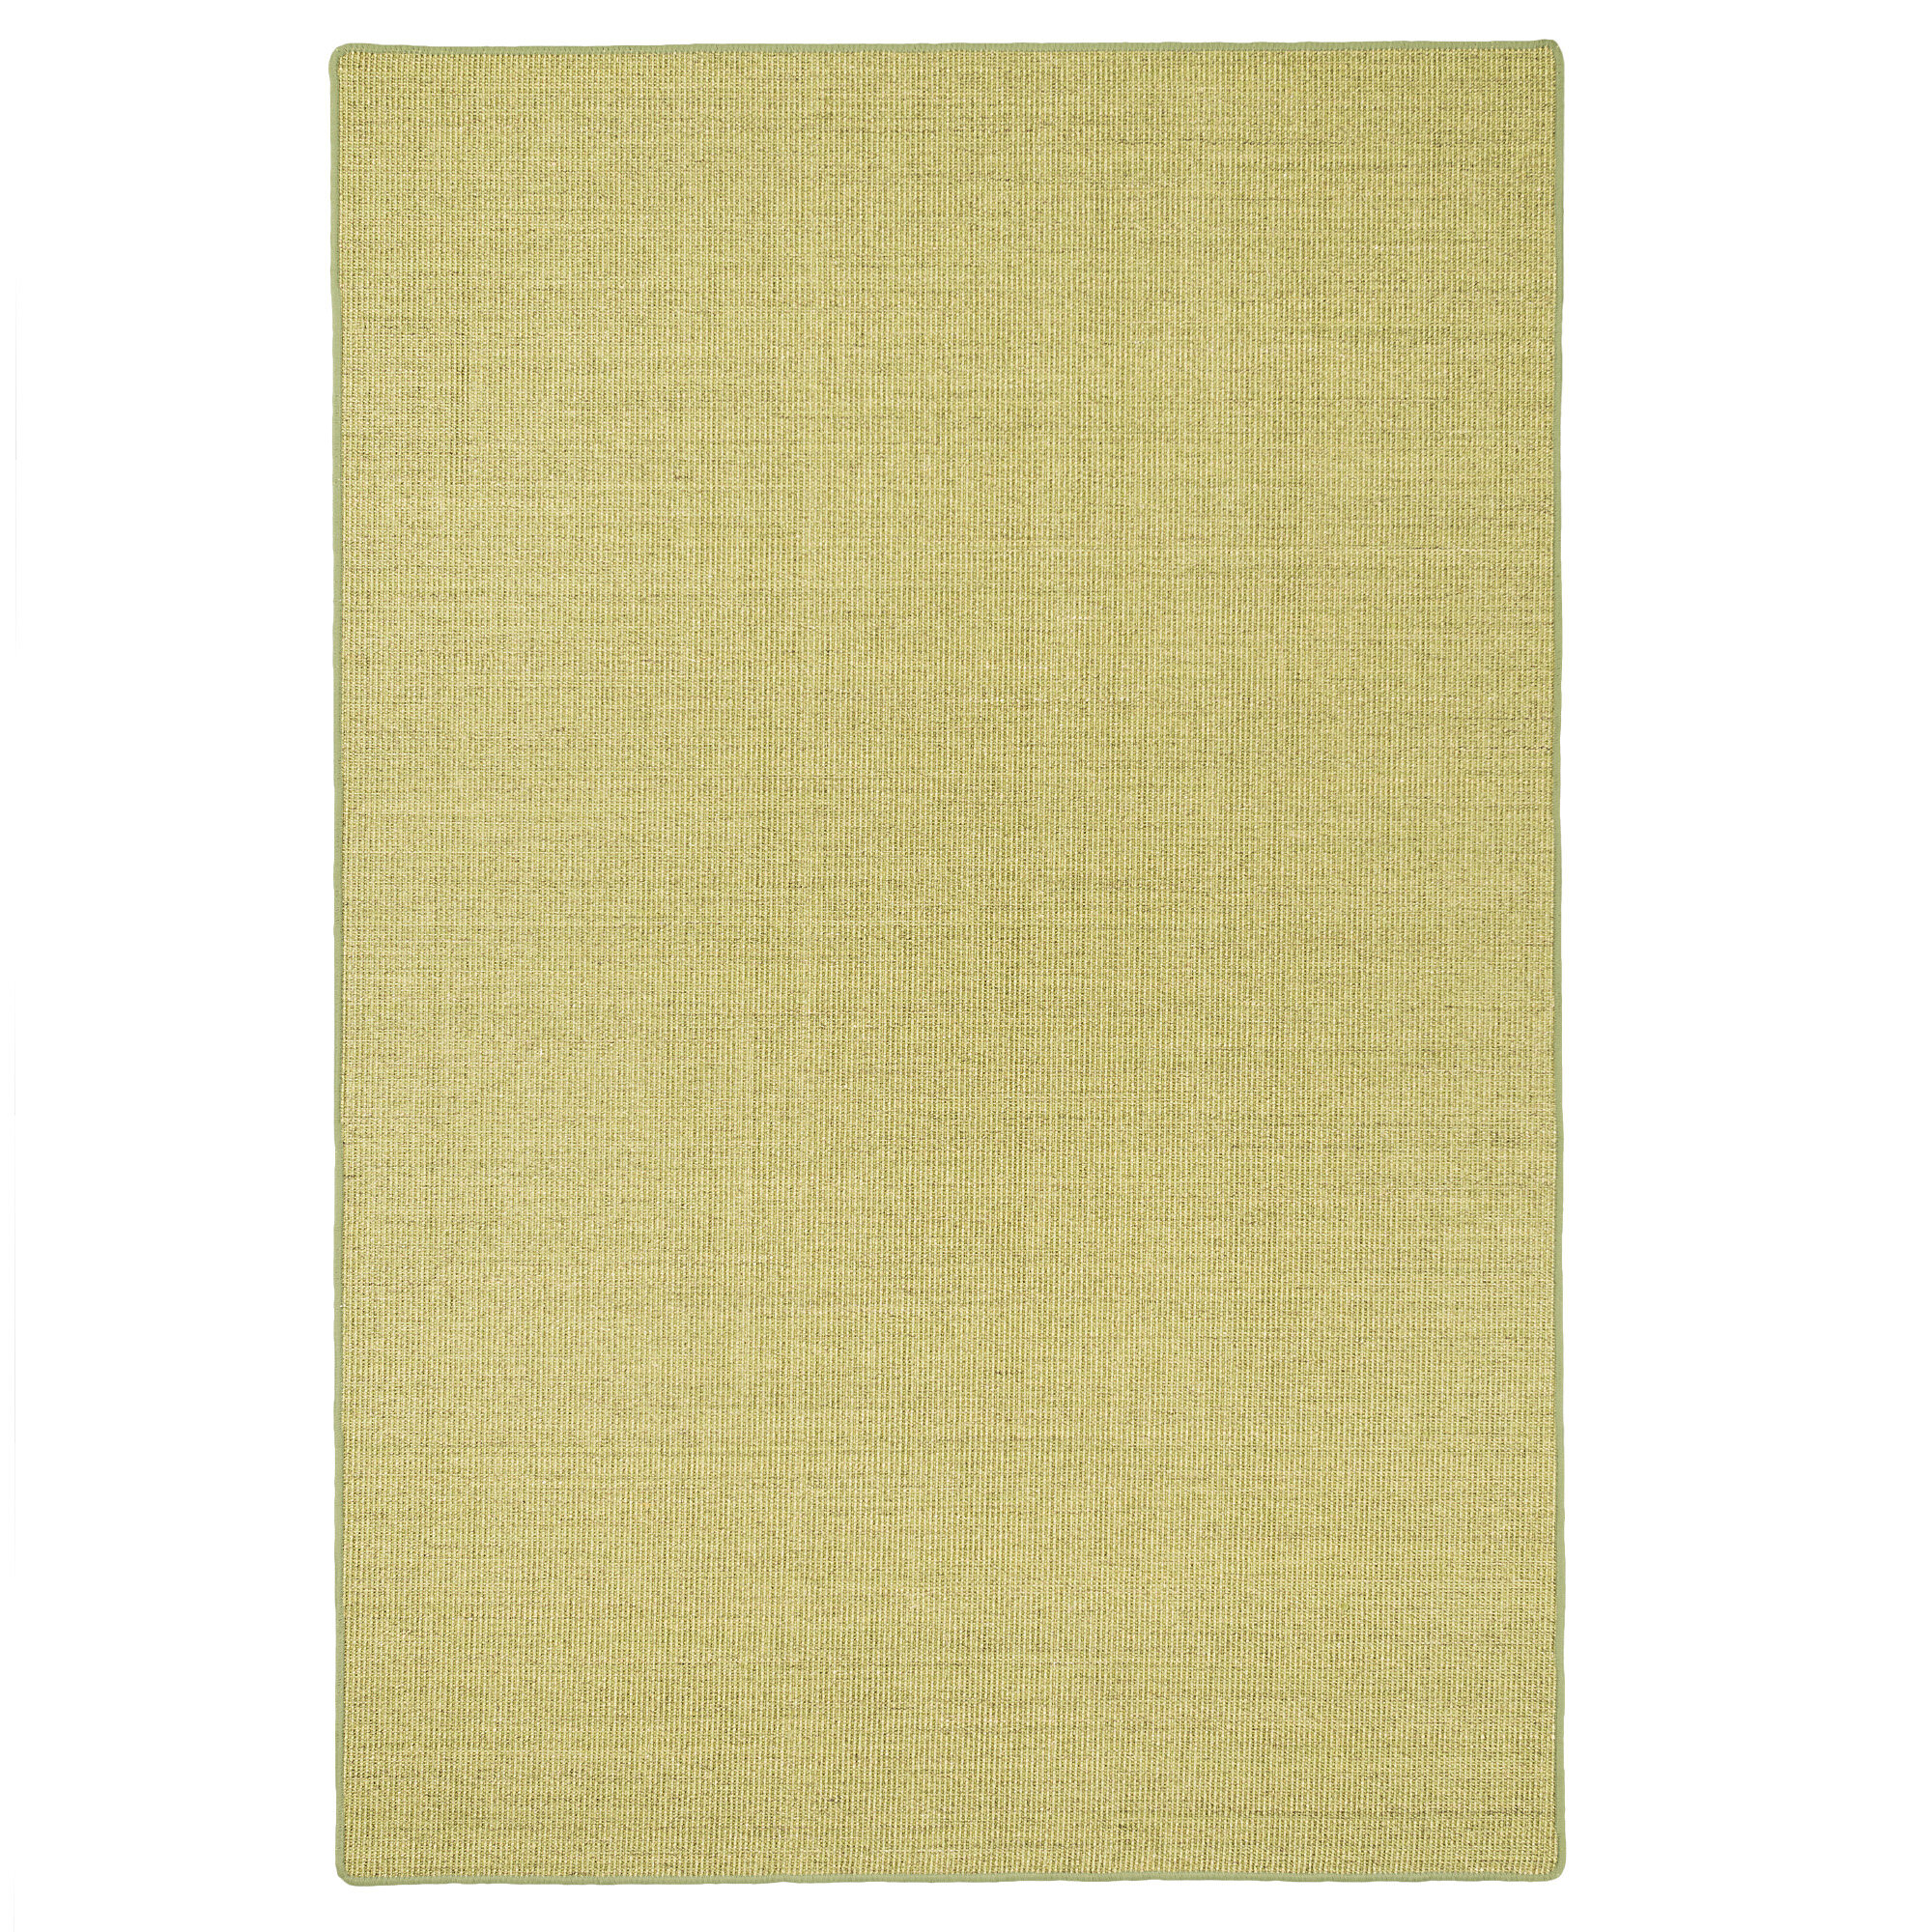 Picture of: August Grove Green Area Rug Wayfair Co Uk